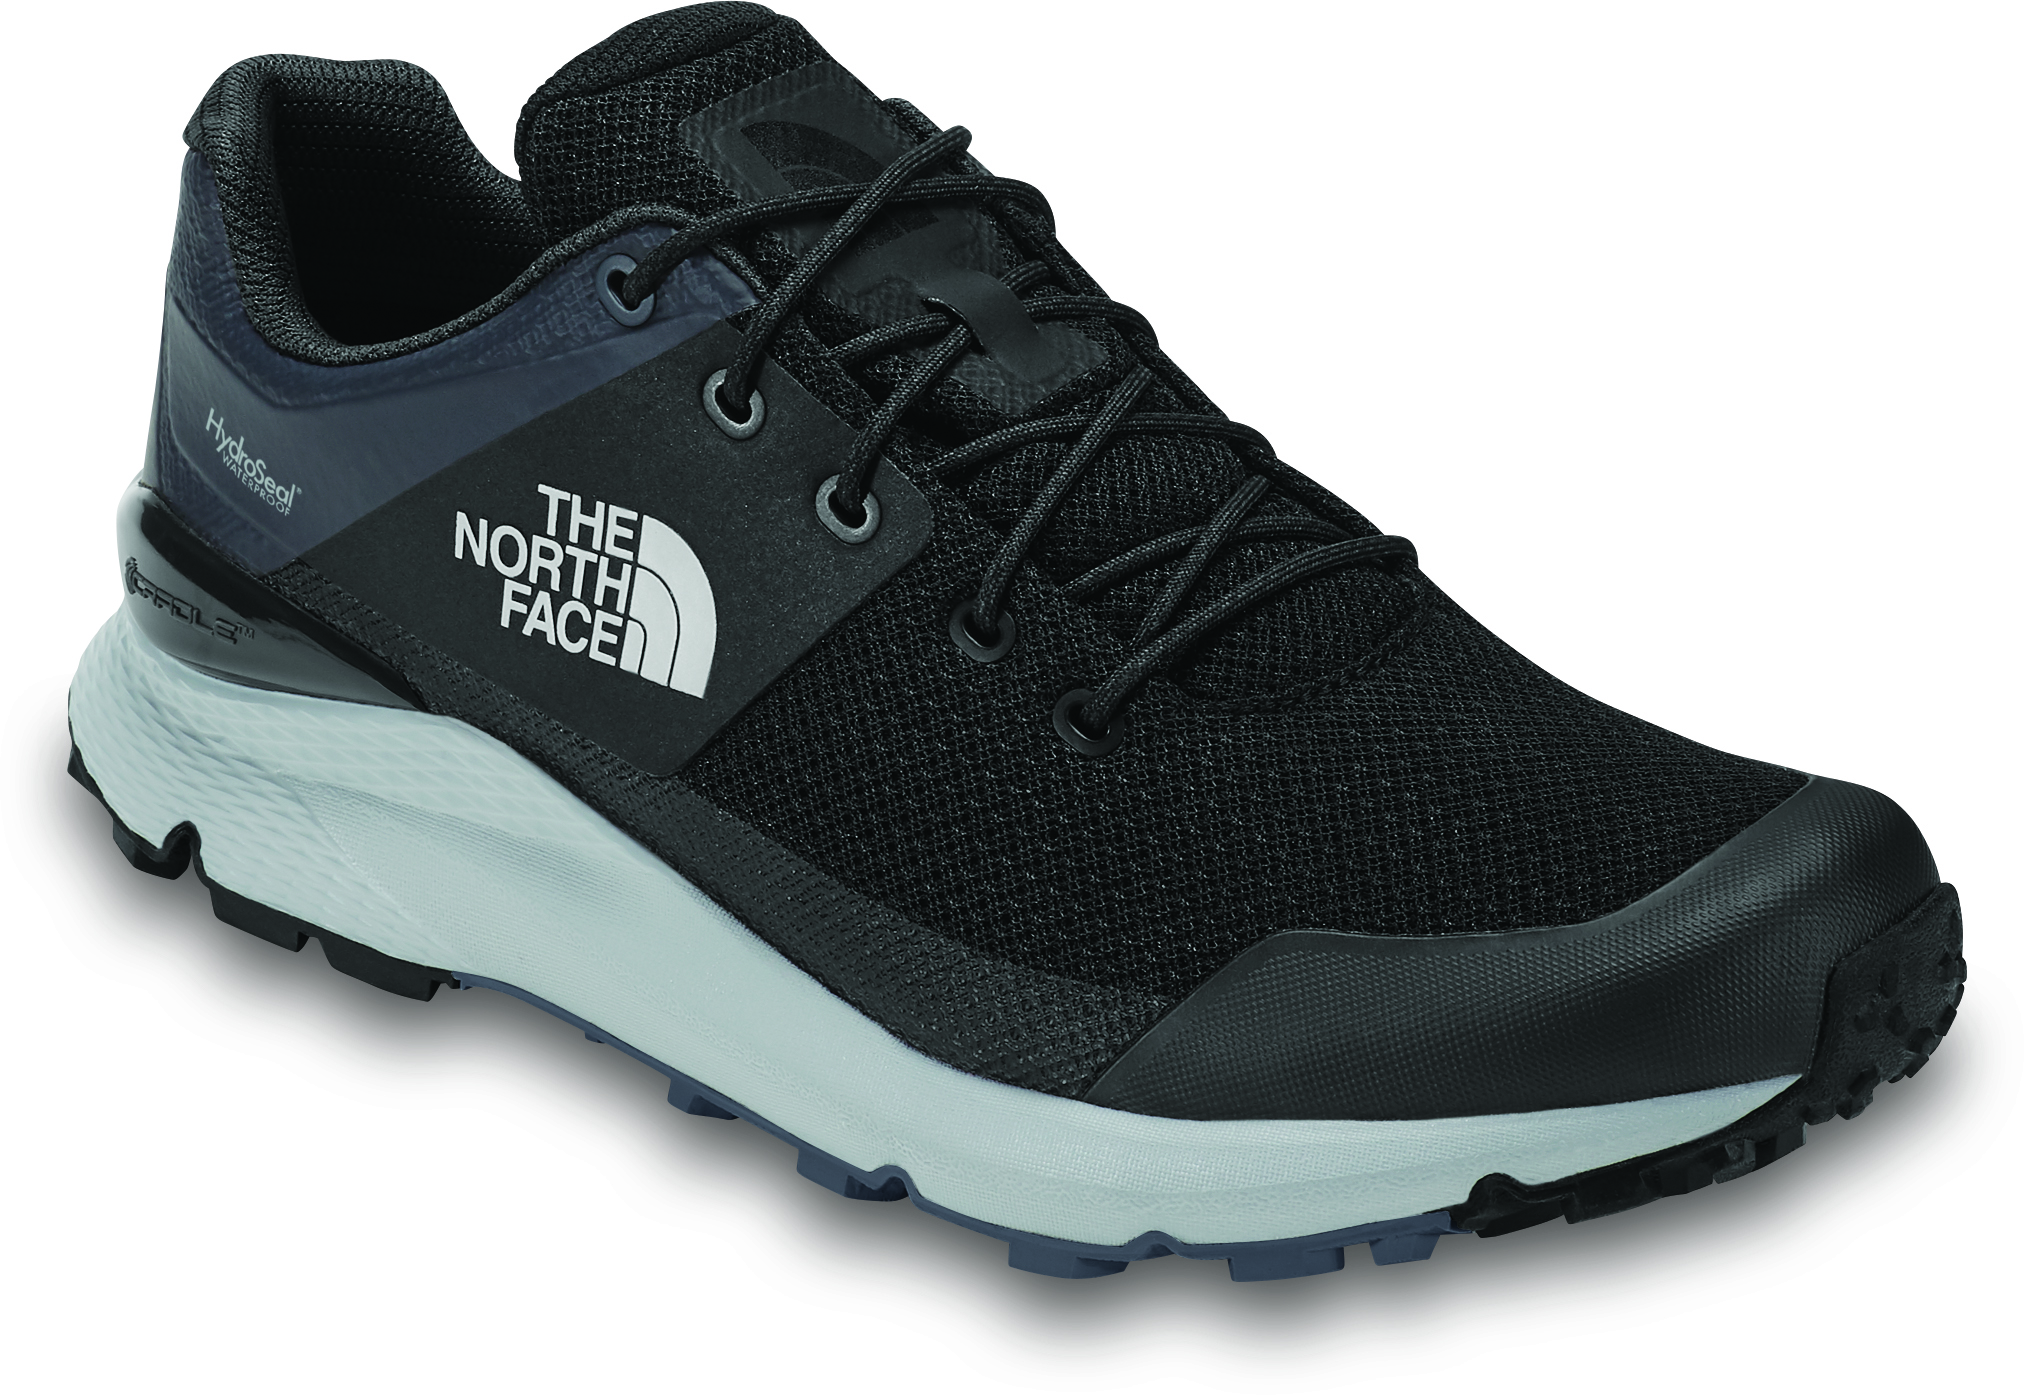 725a76ec8 The North Face Vals Waterproof Trail Shoes - Men's